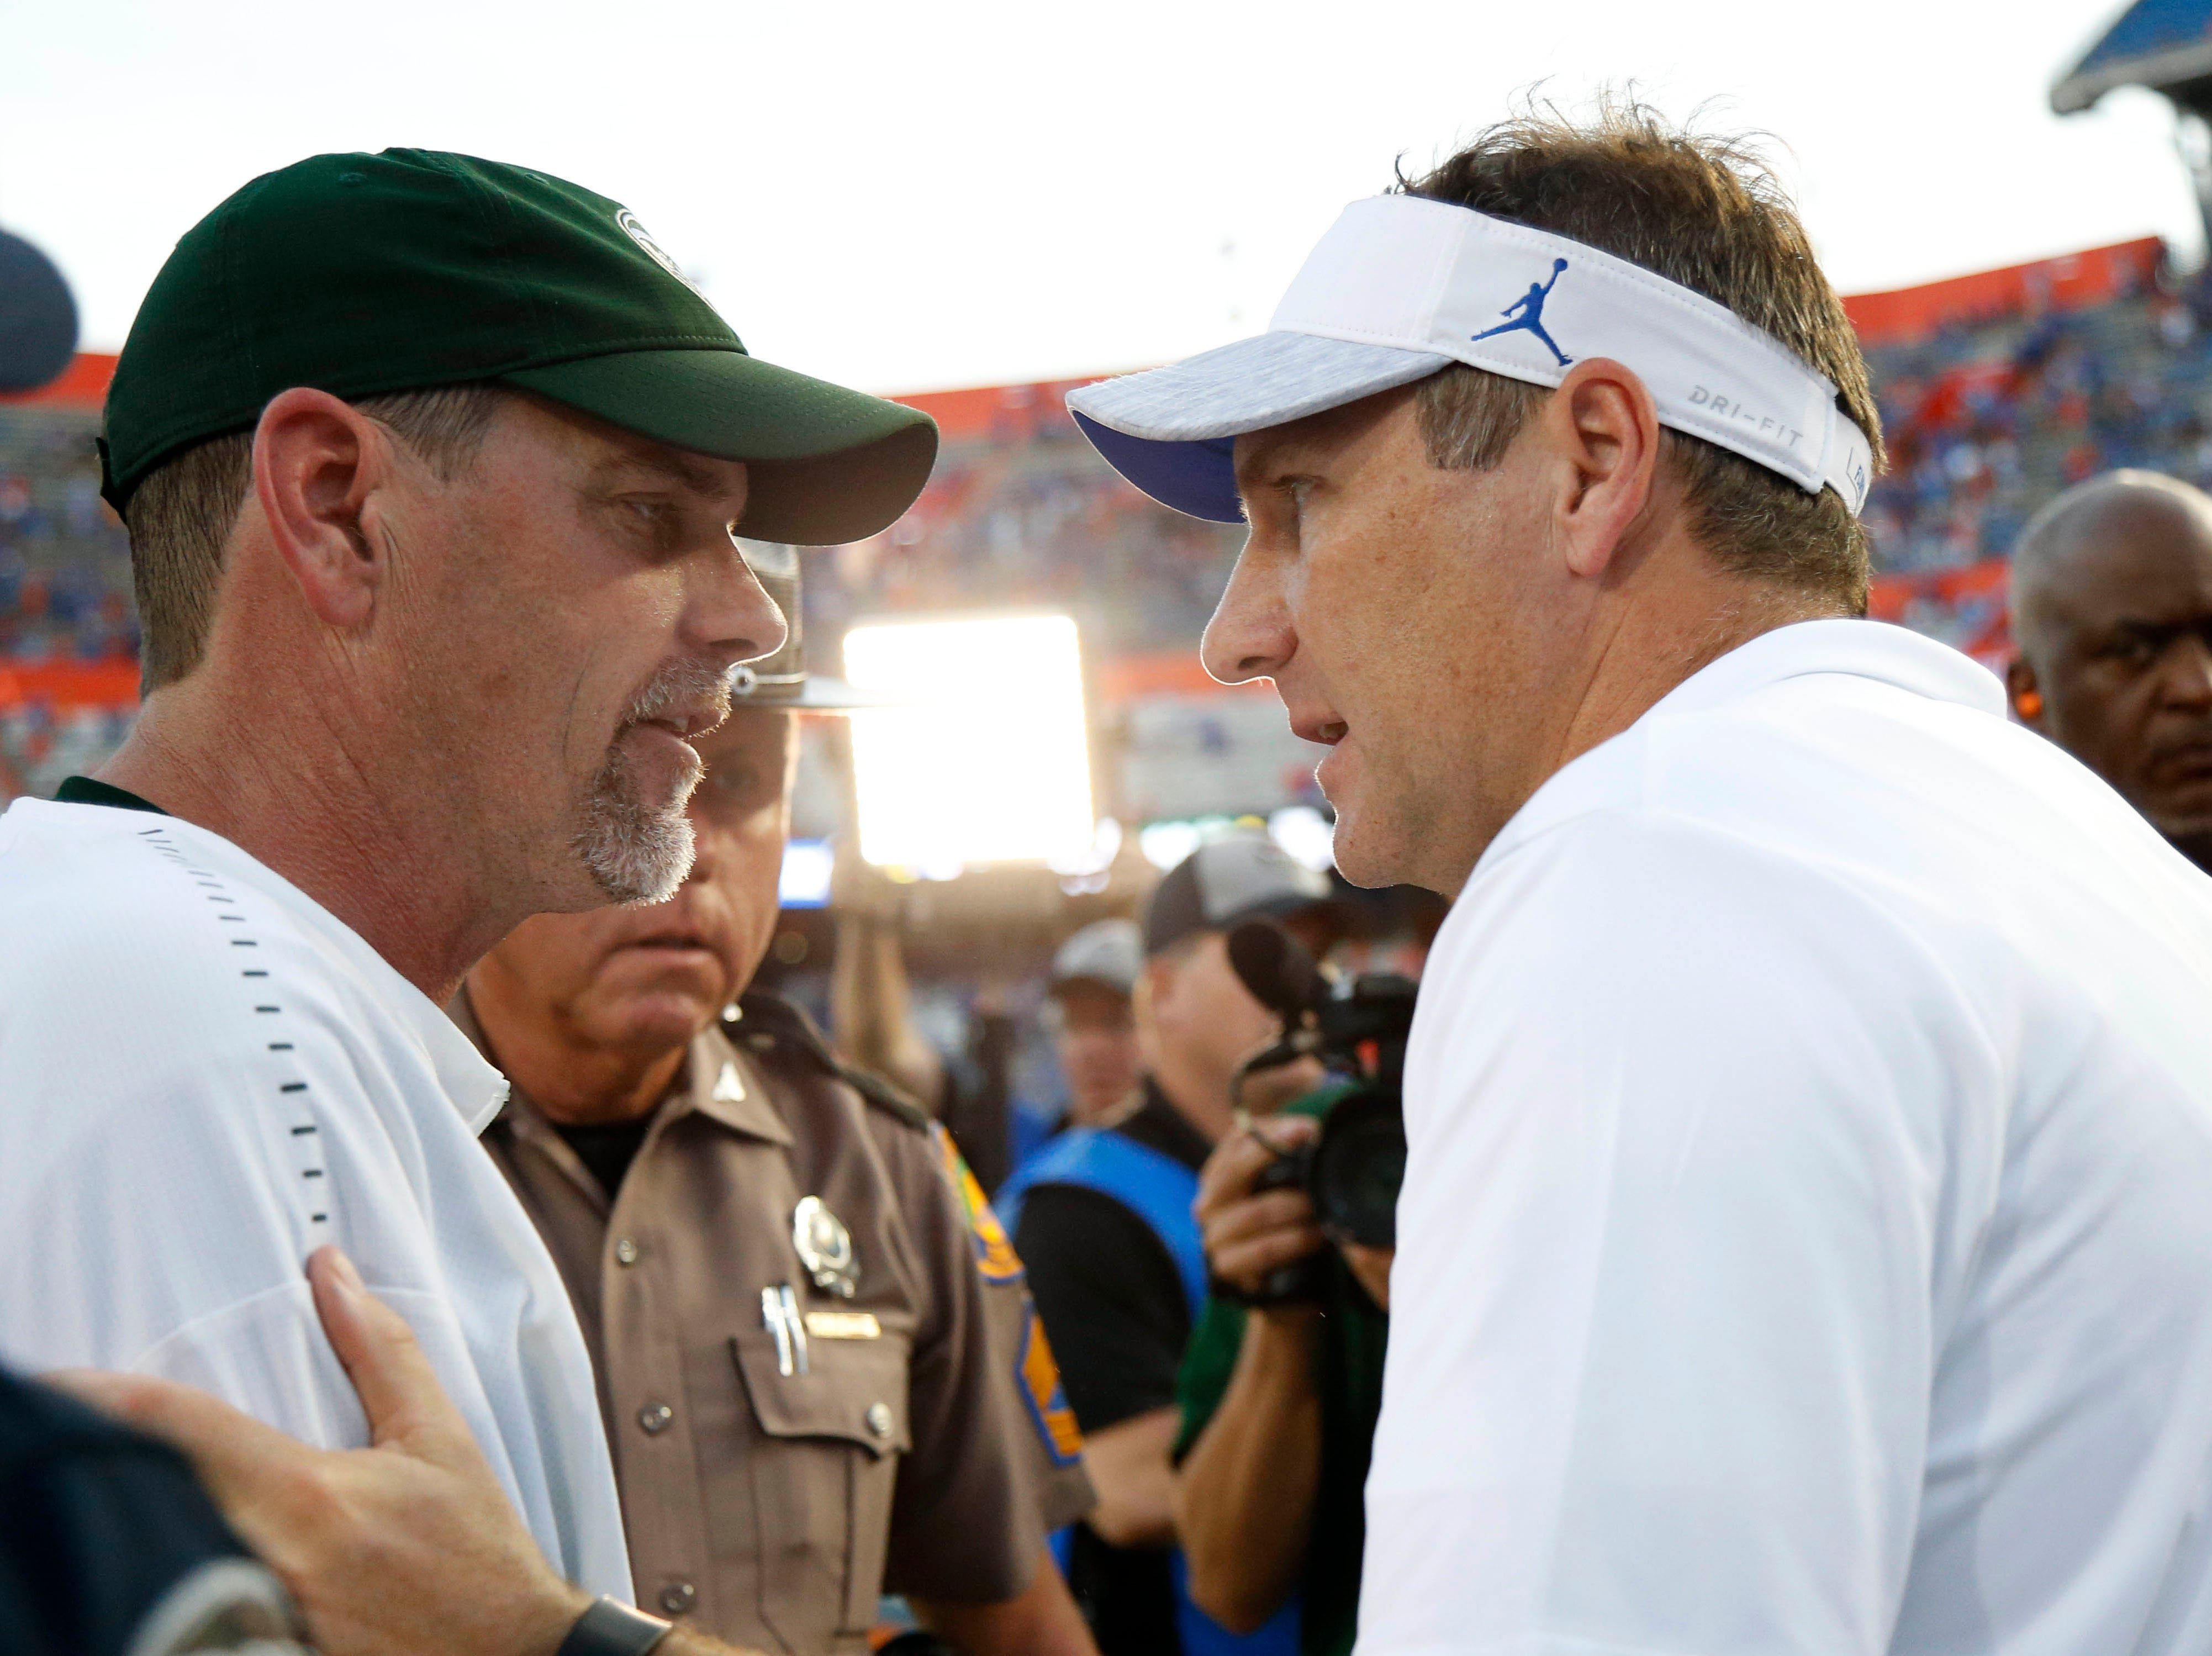 Sep 15, 2018; Gainesville, FL, USA; Colorado State Rams head coach Mike Bobo and Florida Gators head coach Dan Mullen greet after the game at Ben Hill Griffin Stadium. Mandatory Credit: Kim Klement-USA TODAY Sports